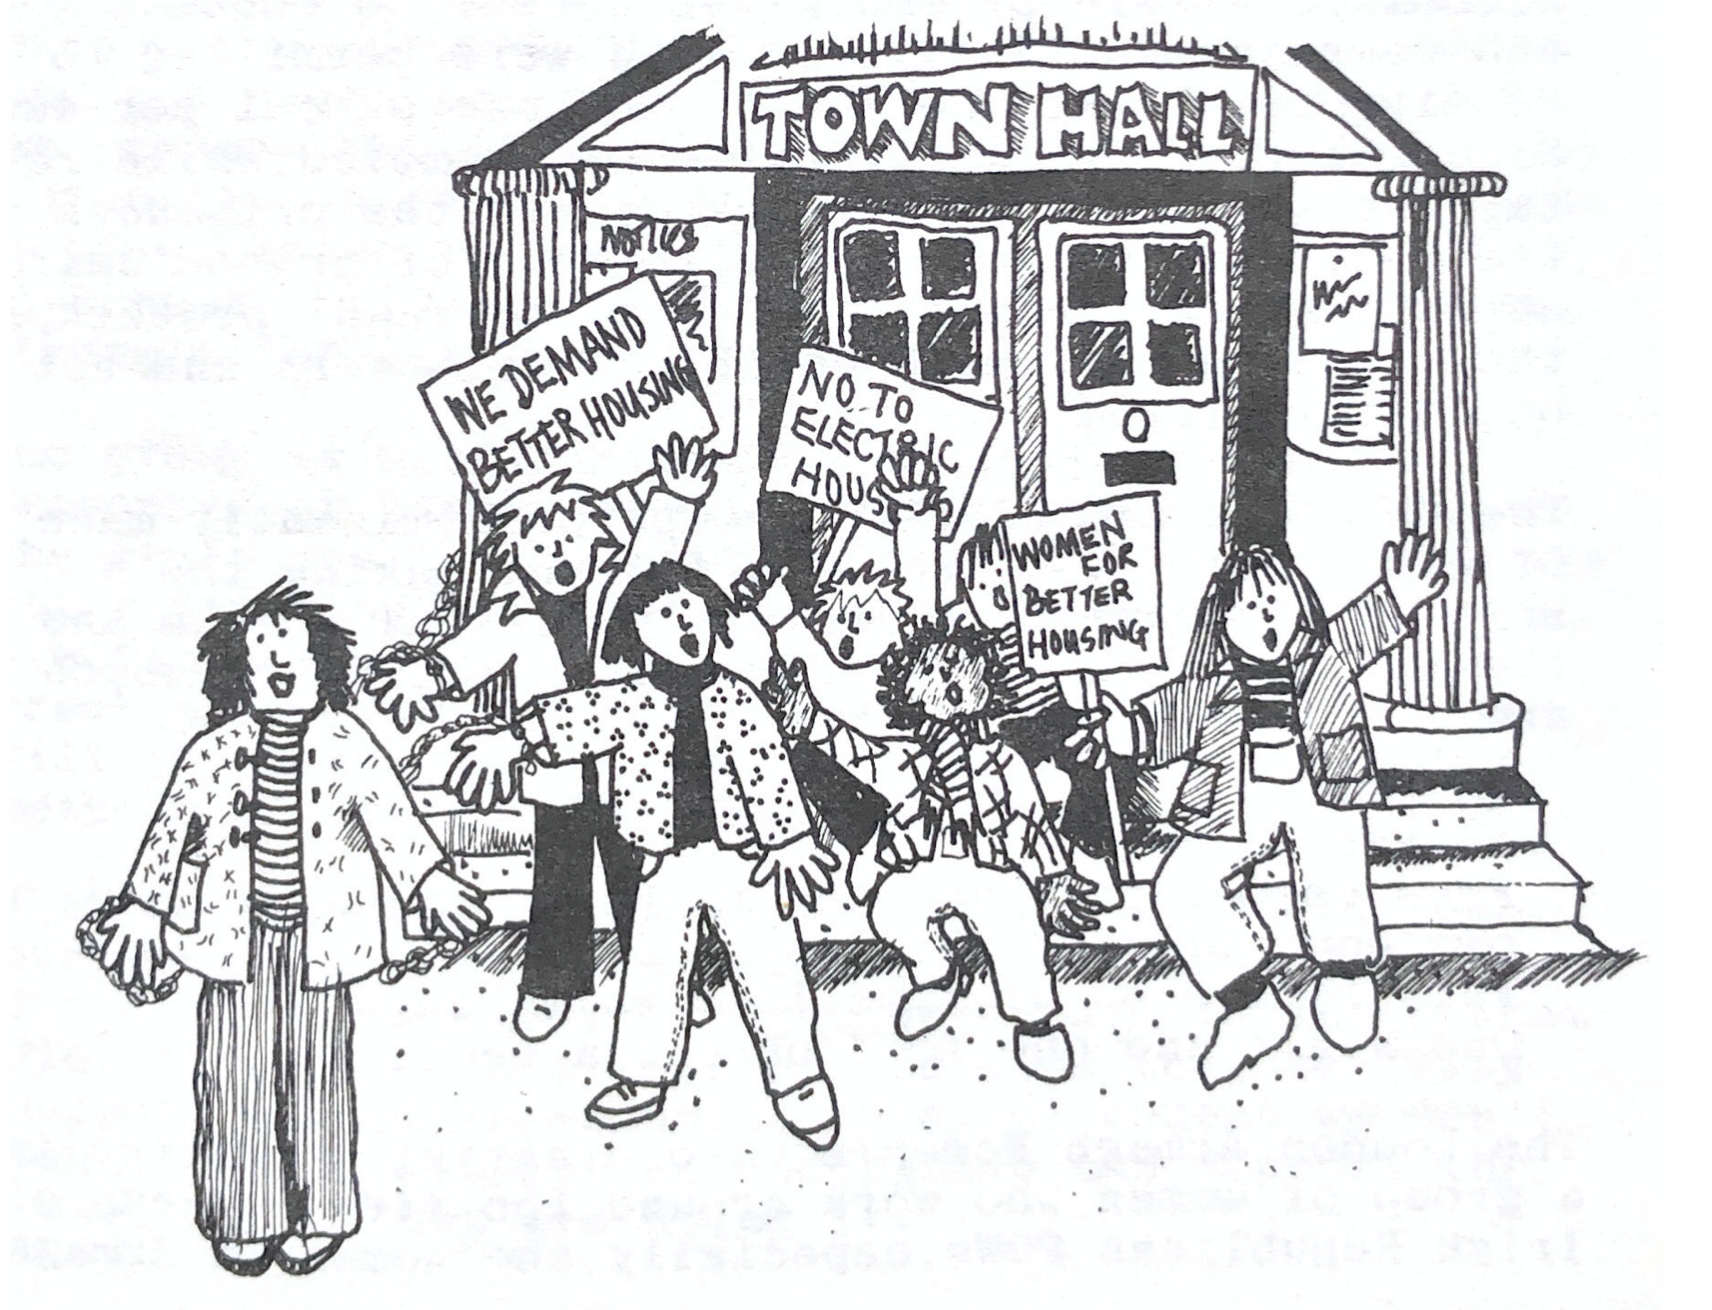 Illustration of a group of people protesting outside a Town Hall. They hold placards emblazoned with 'We demand better housing', 'No to electric housing' and 'Women for better housing'.